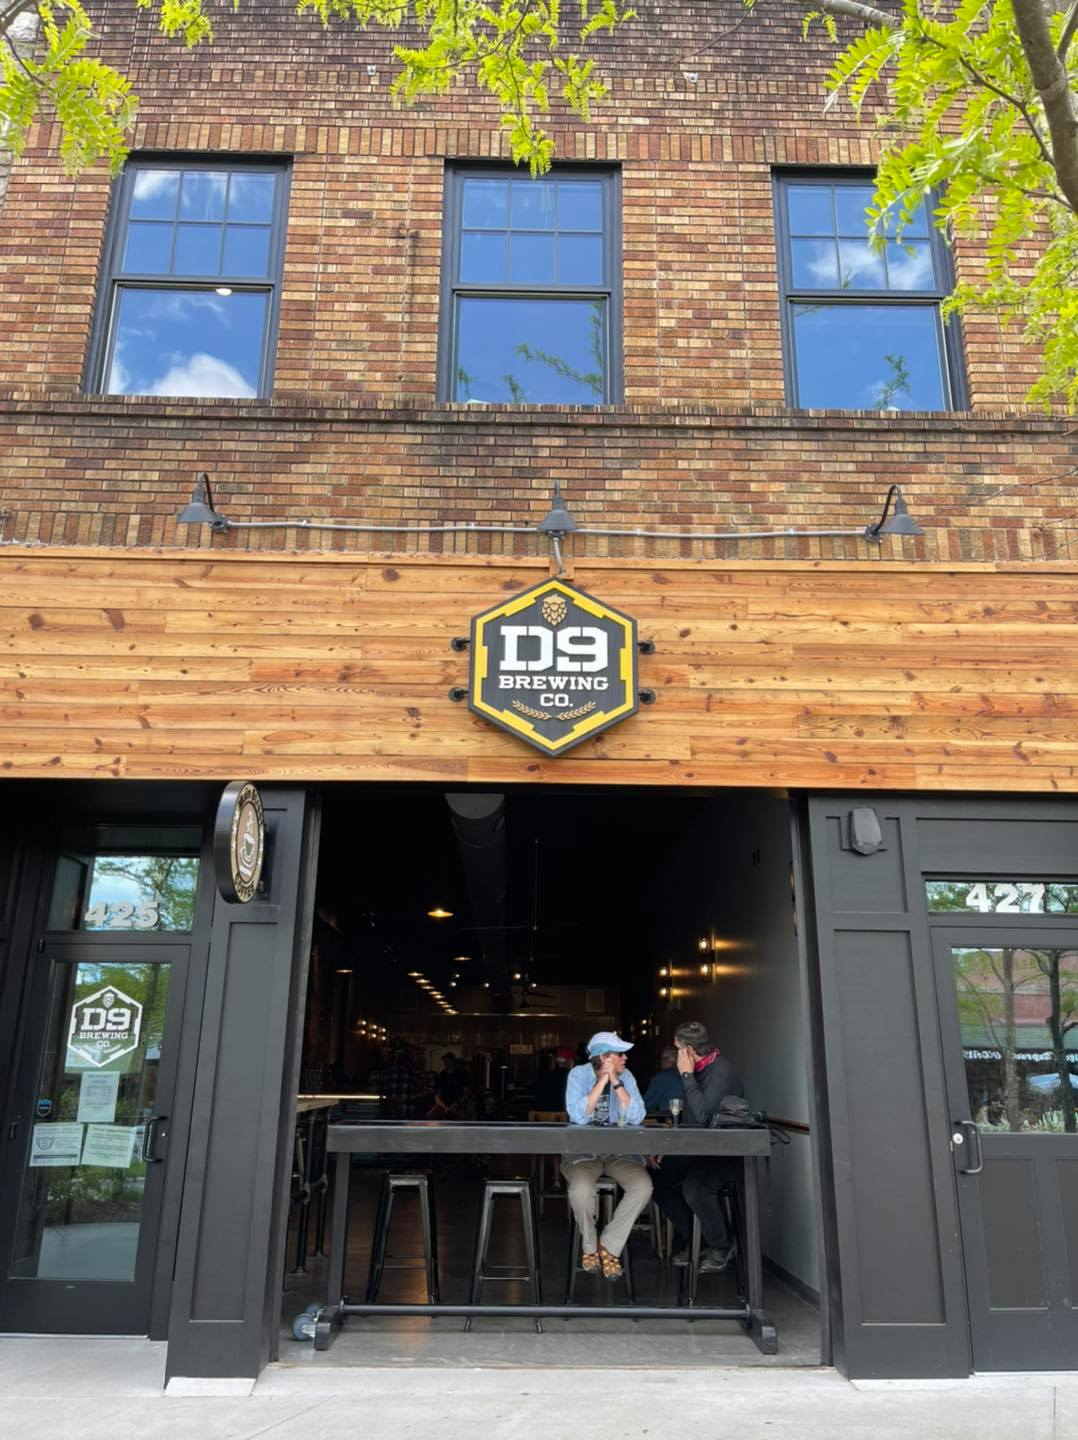 Hendersonville Craft Brewery Offerings Continue to Grow